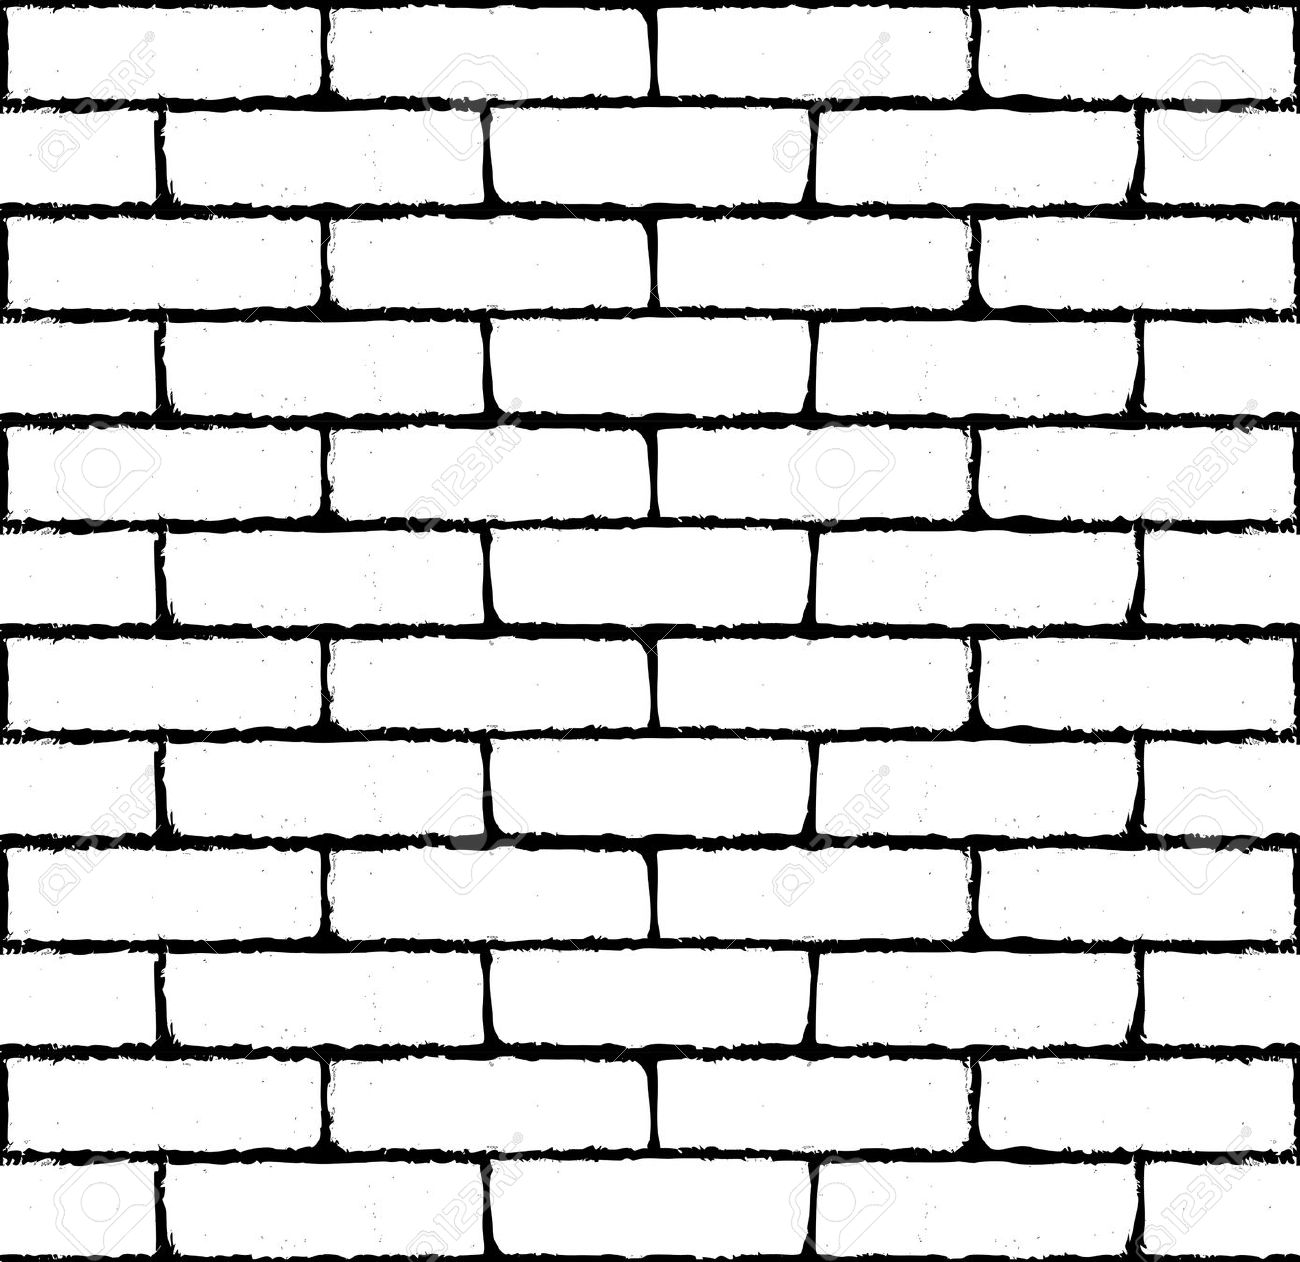 Wall clipart black and white 1 » Clipart Station.